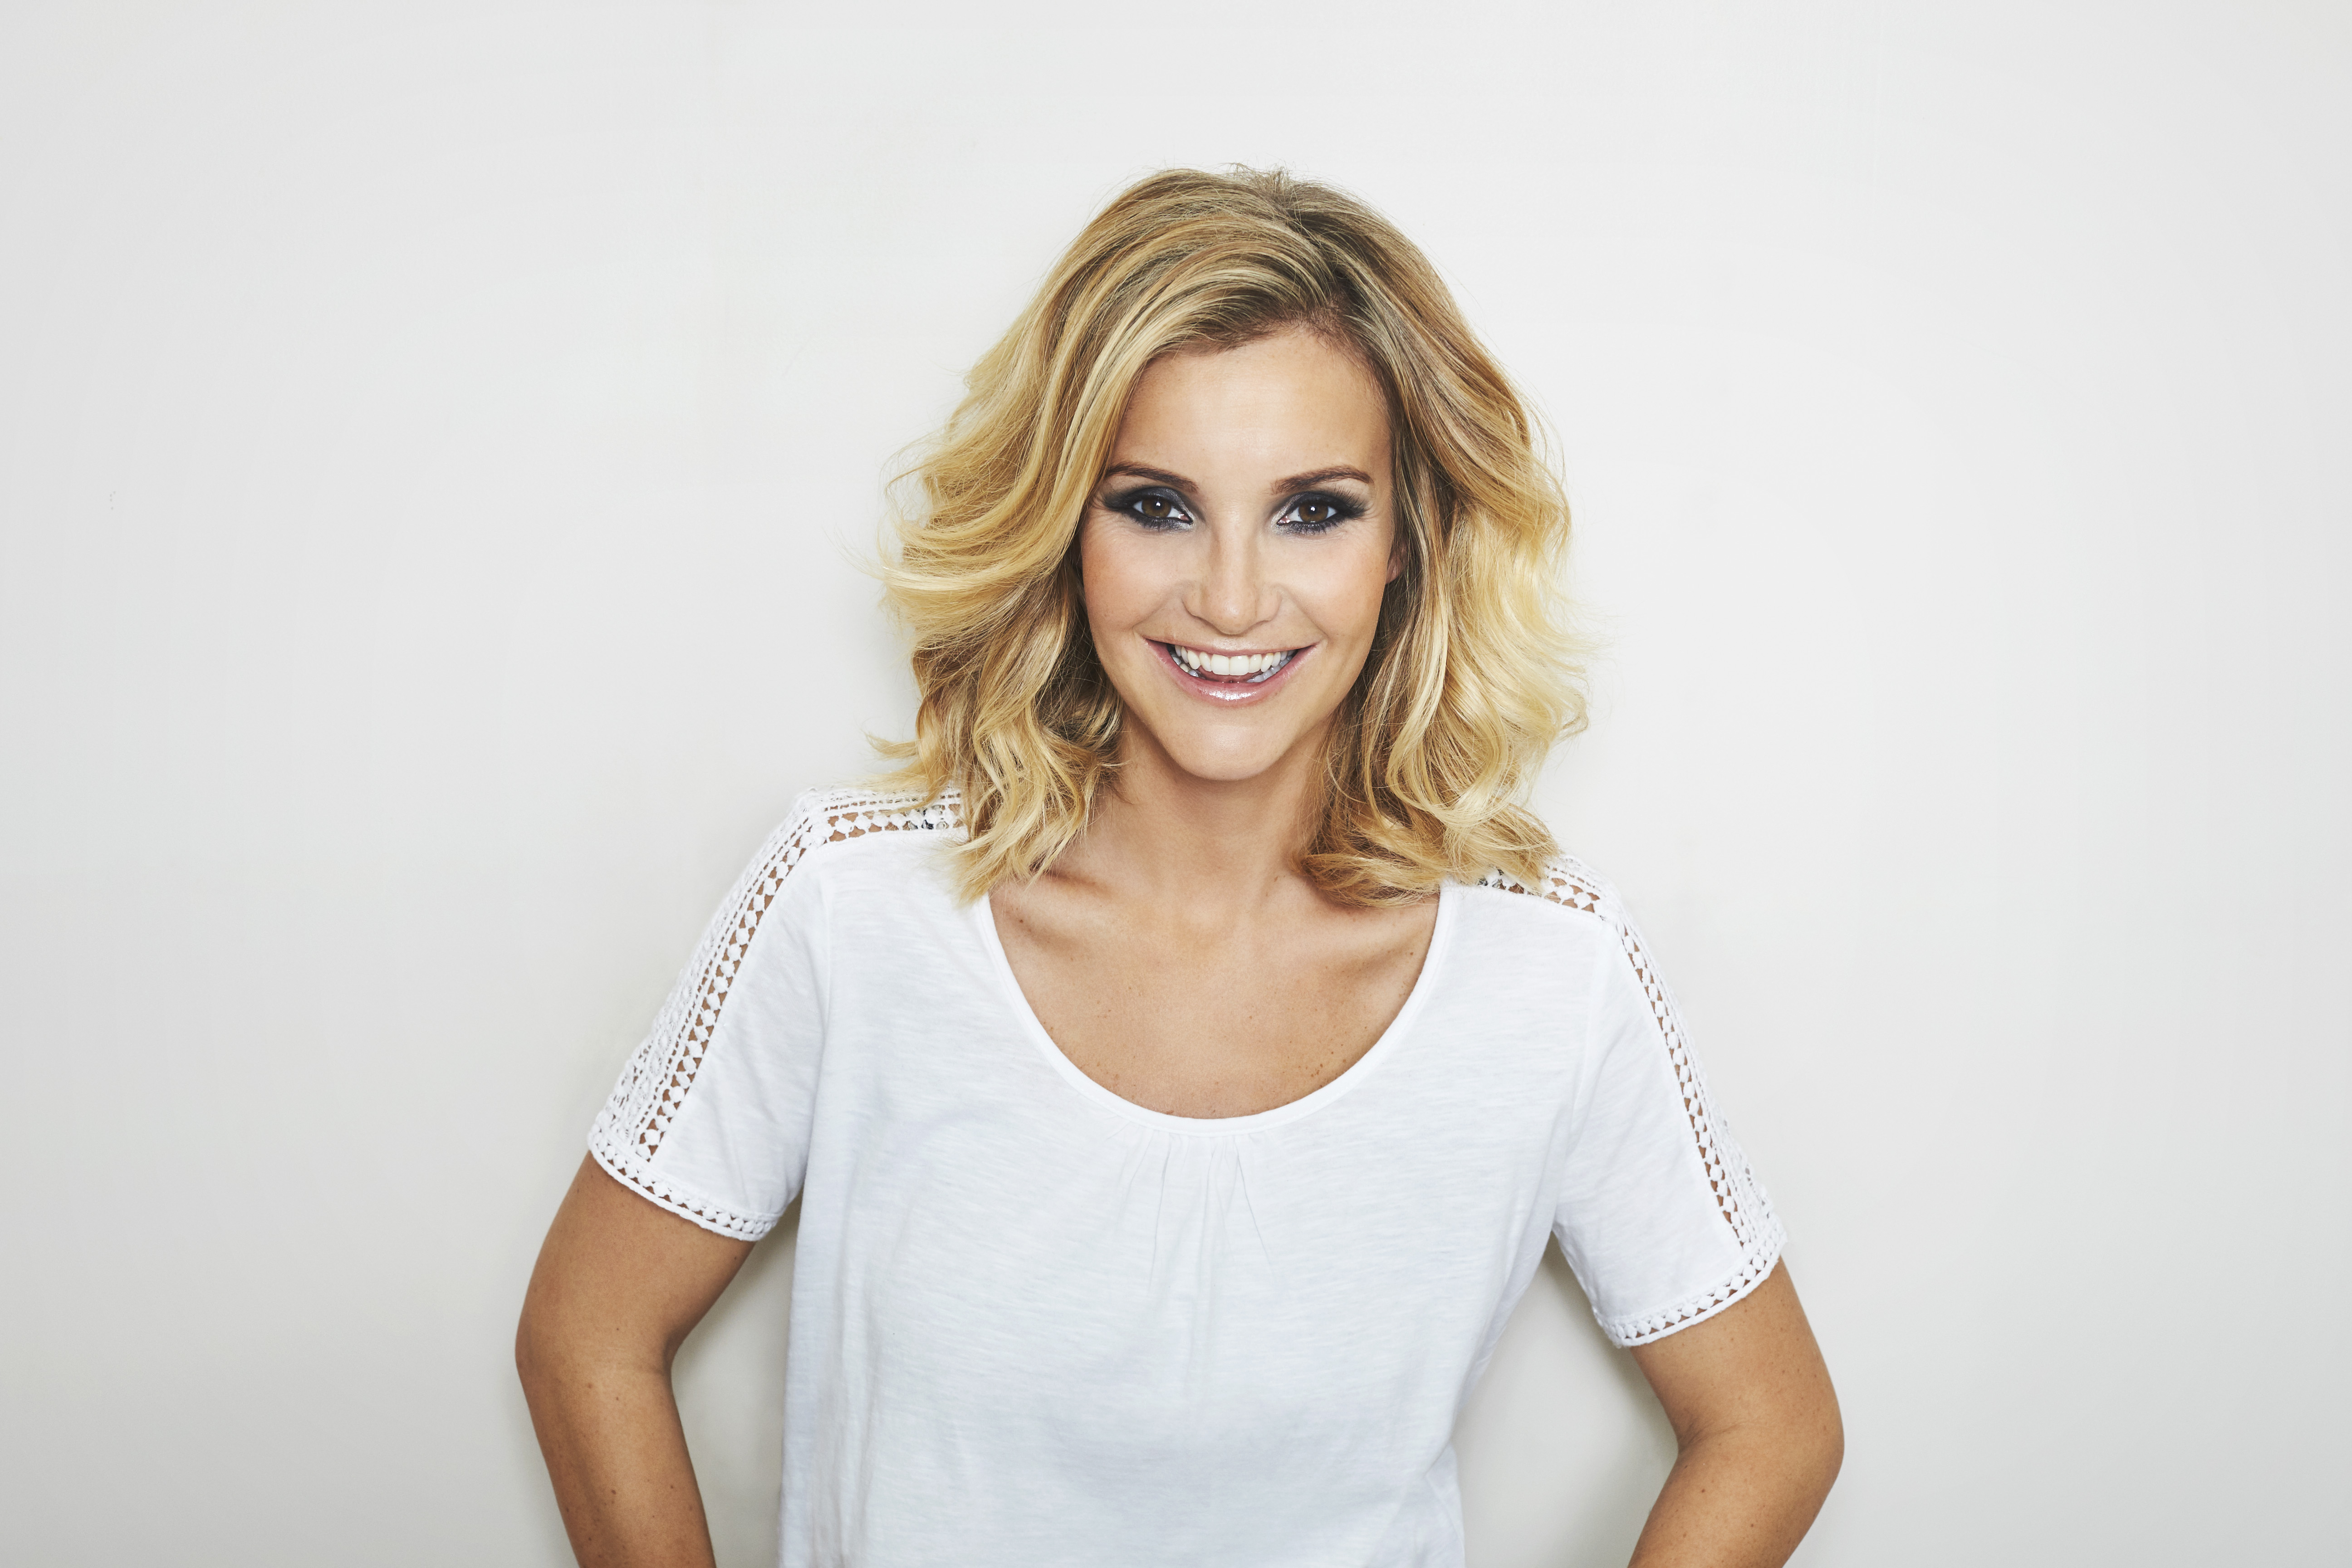 Helen Skelton on the 'chaos' of motherhood and why she isn't bothered by comments on her outfits